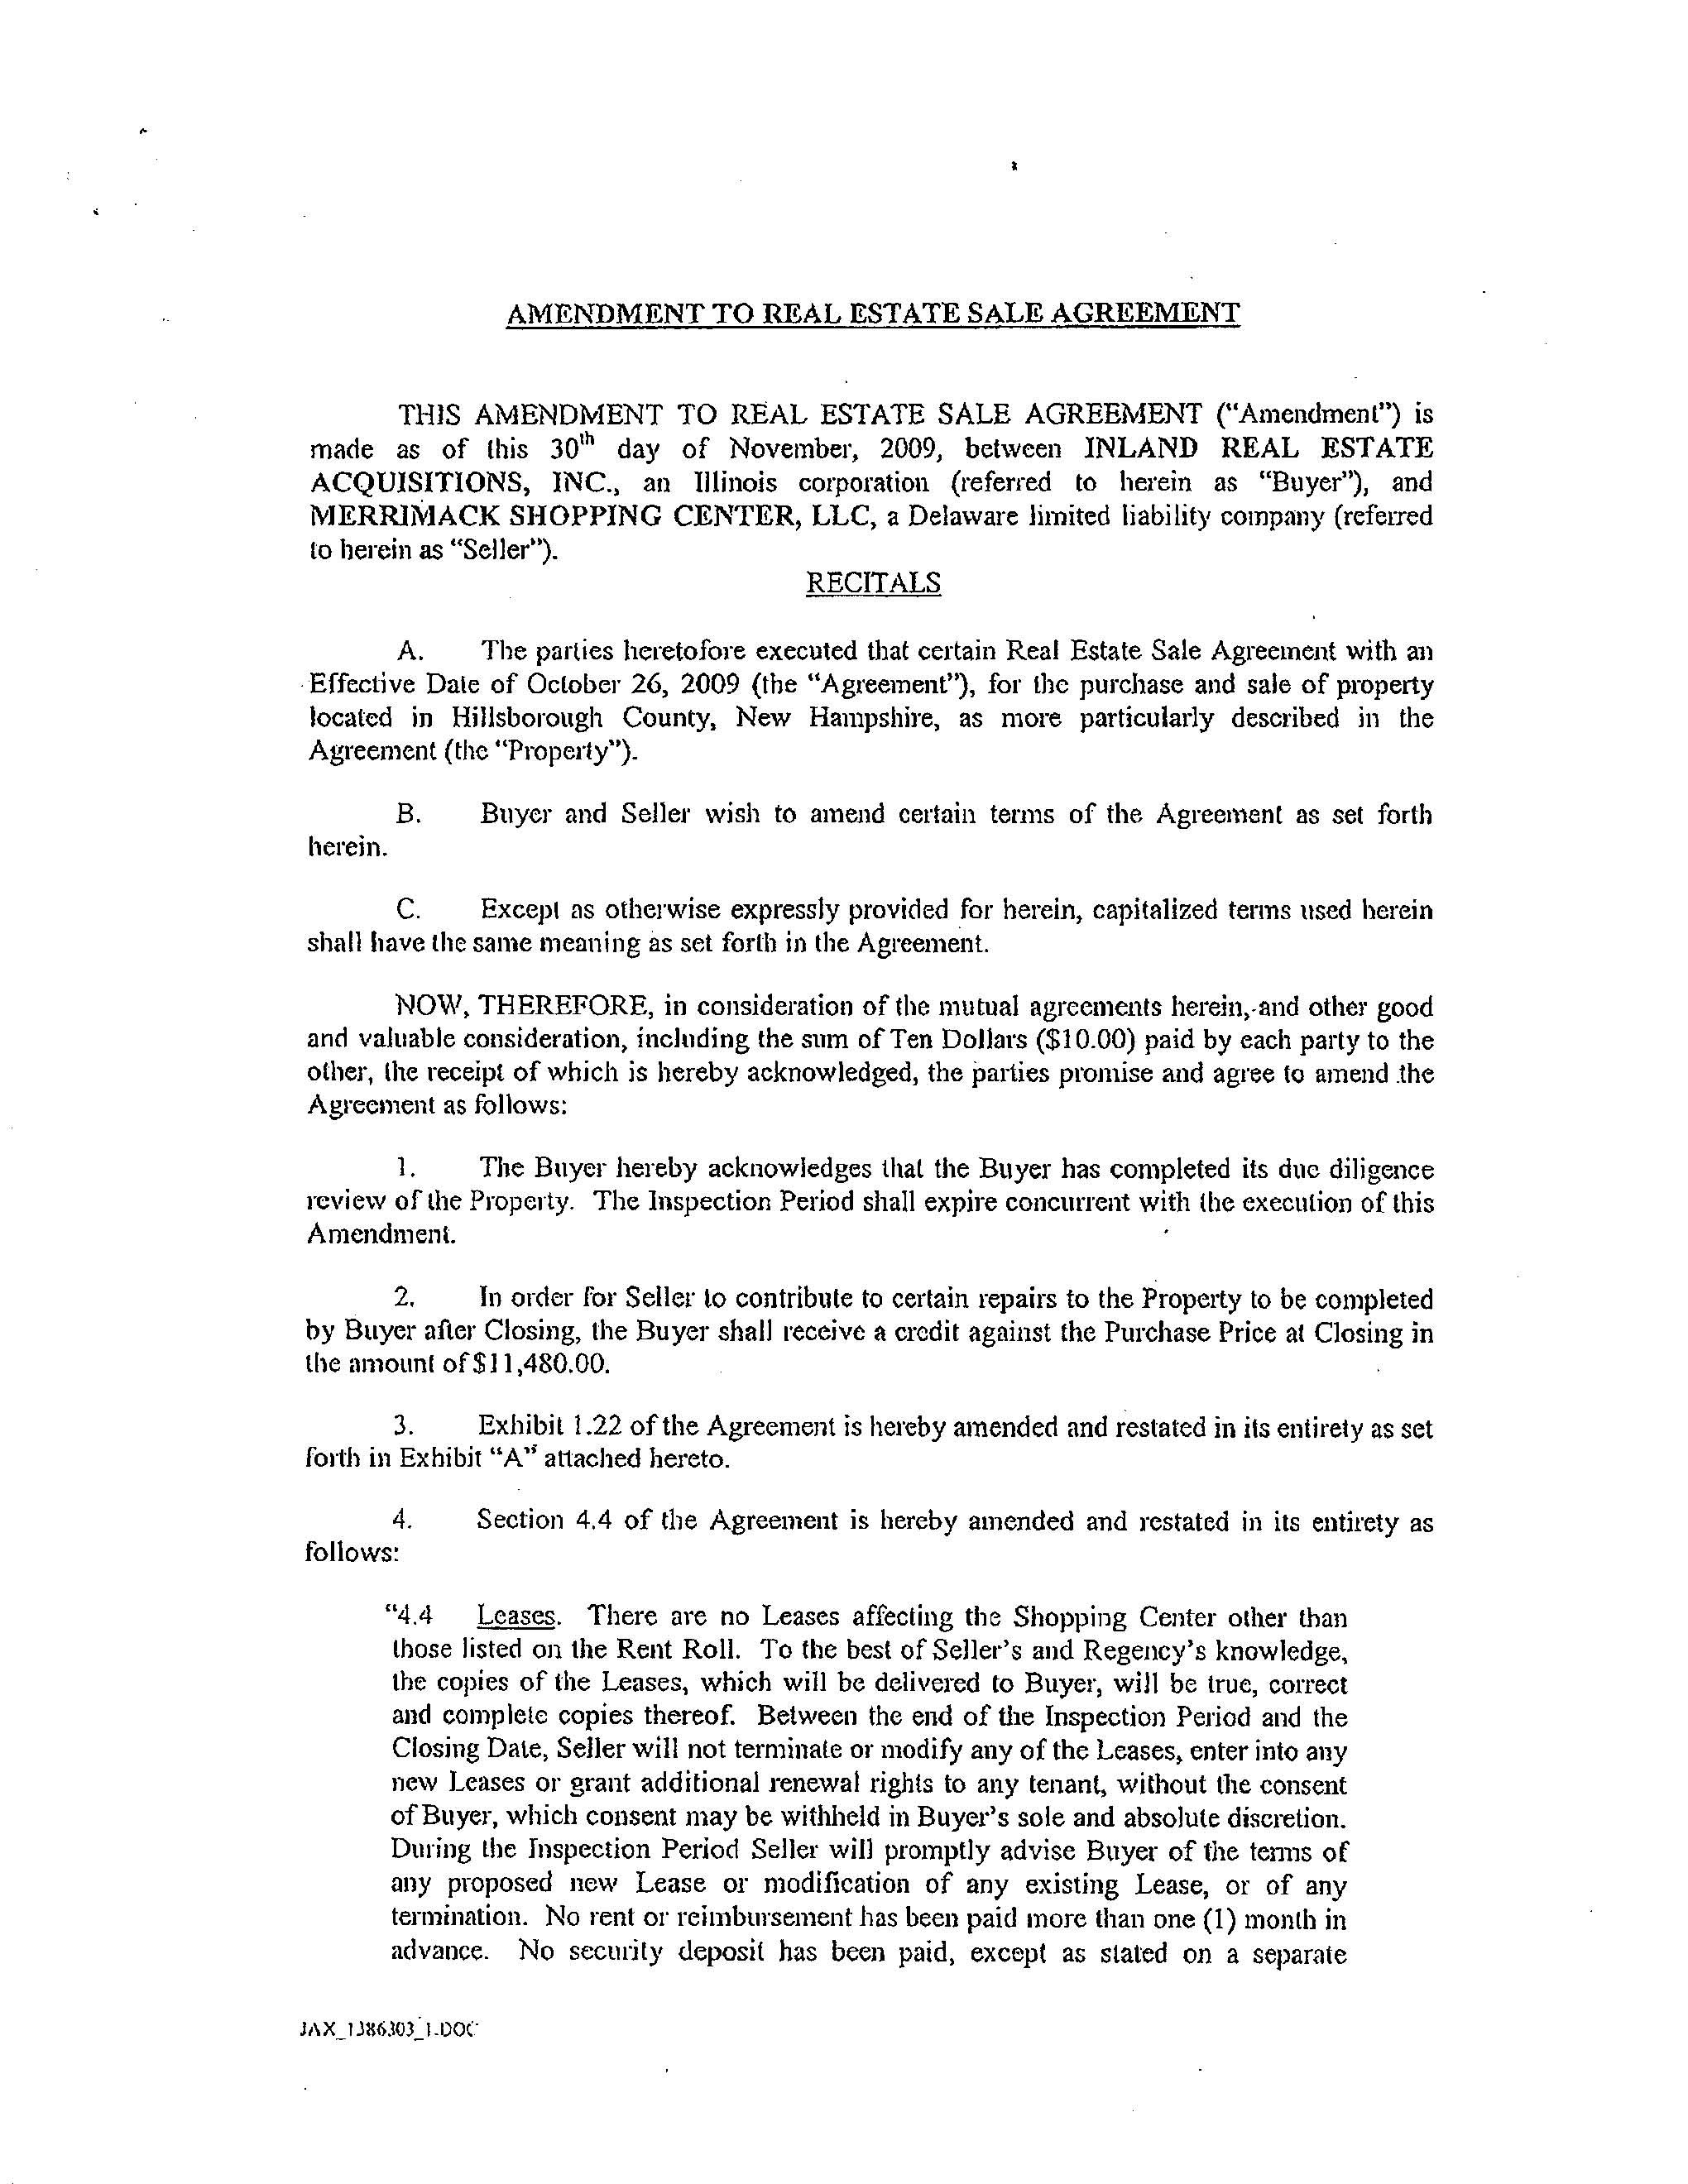 Real Estate Sale Agreement Intended For Credit Purchase Agreement Template